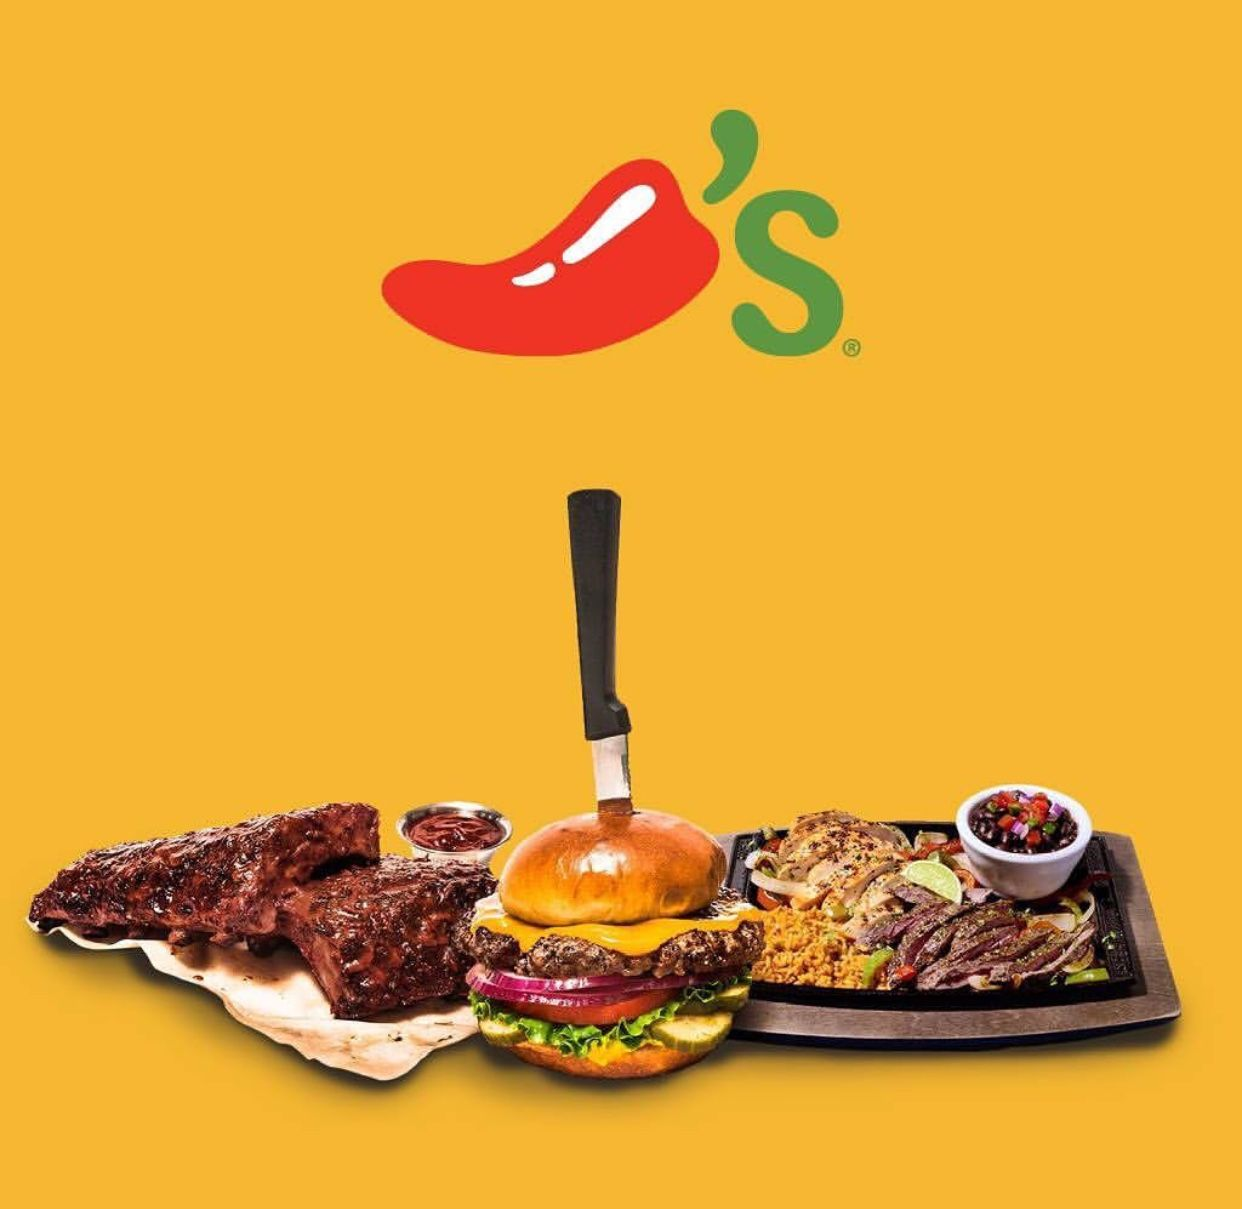 If you love Chilis, be sure and download the Dosh App and